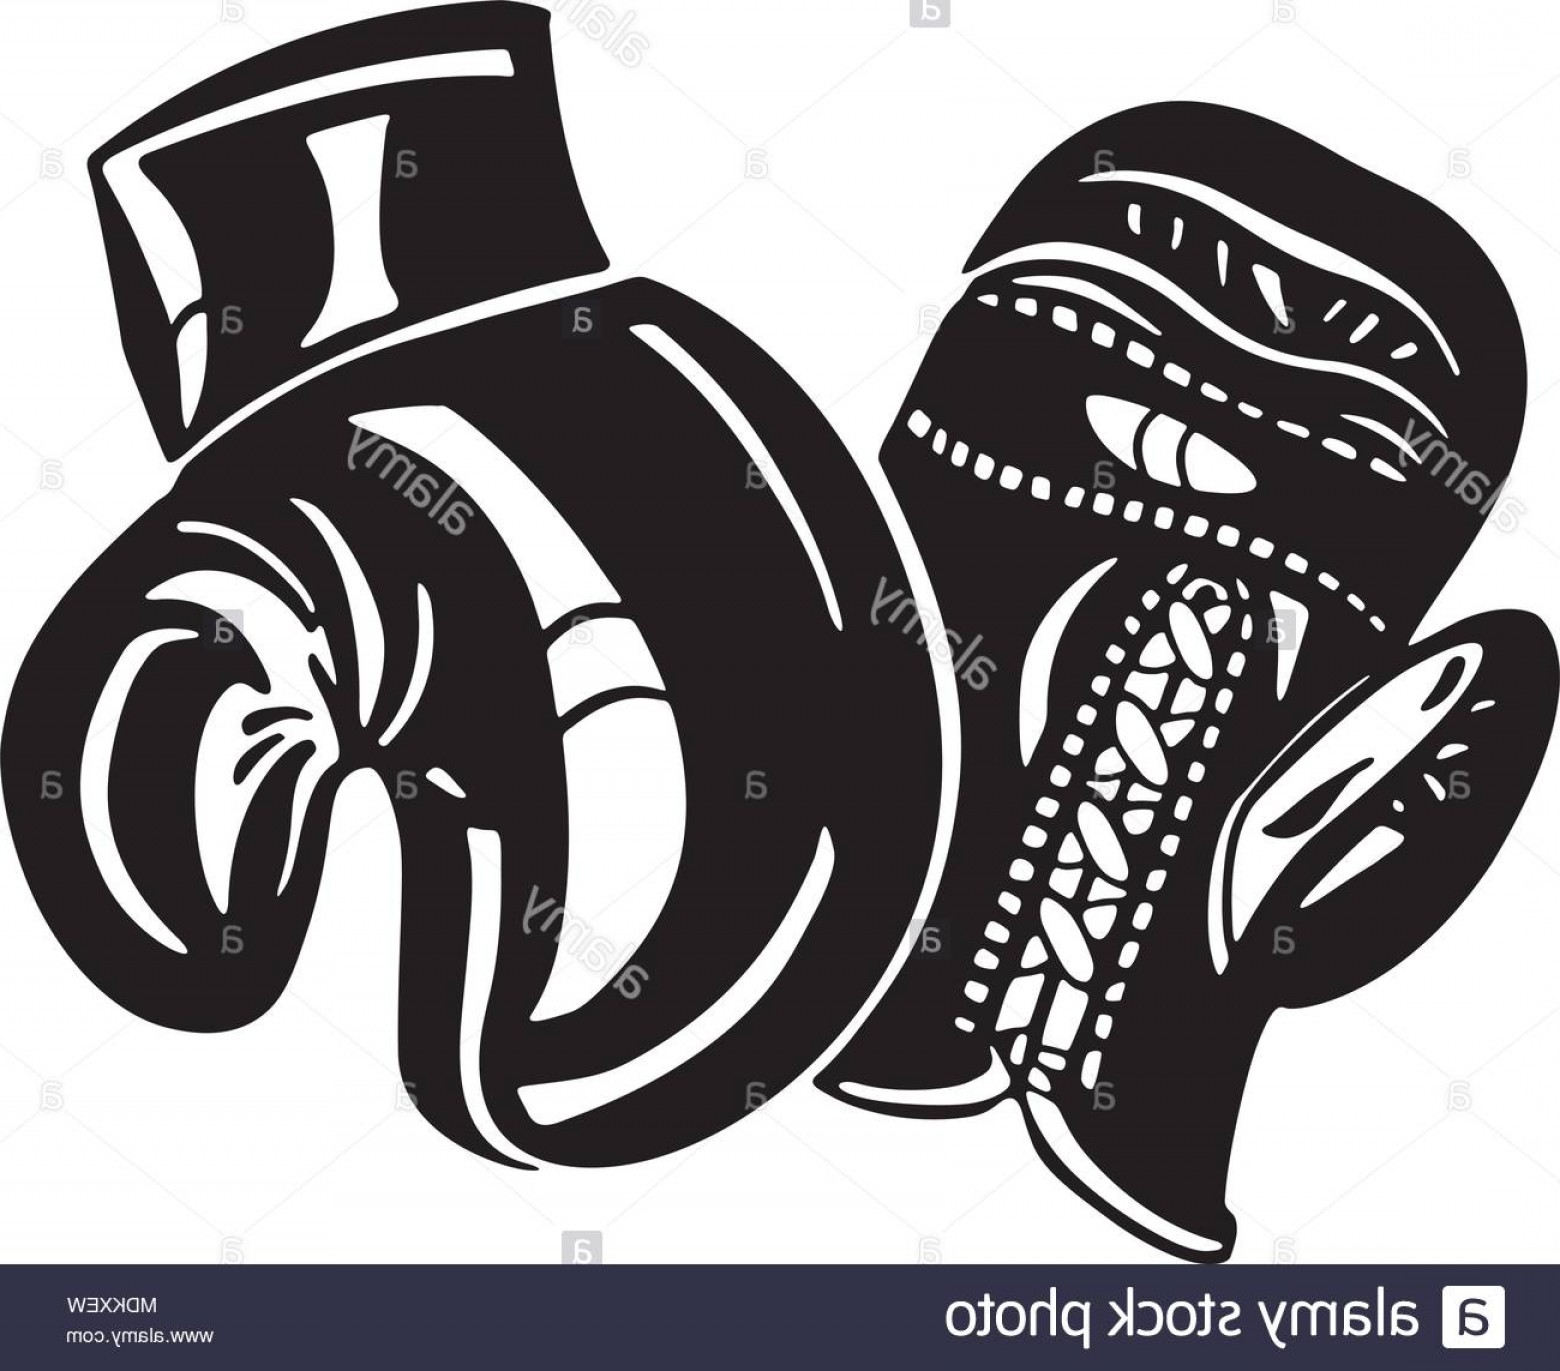 Boxing Gloves Vector Clip Art: Boxing Gloves Retro Clipart Illustration Image